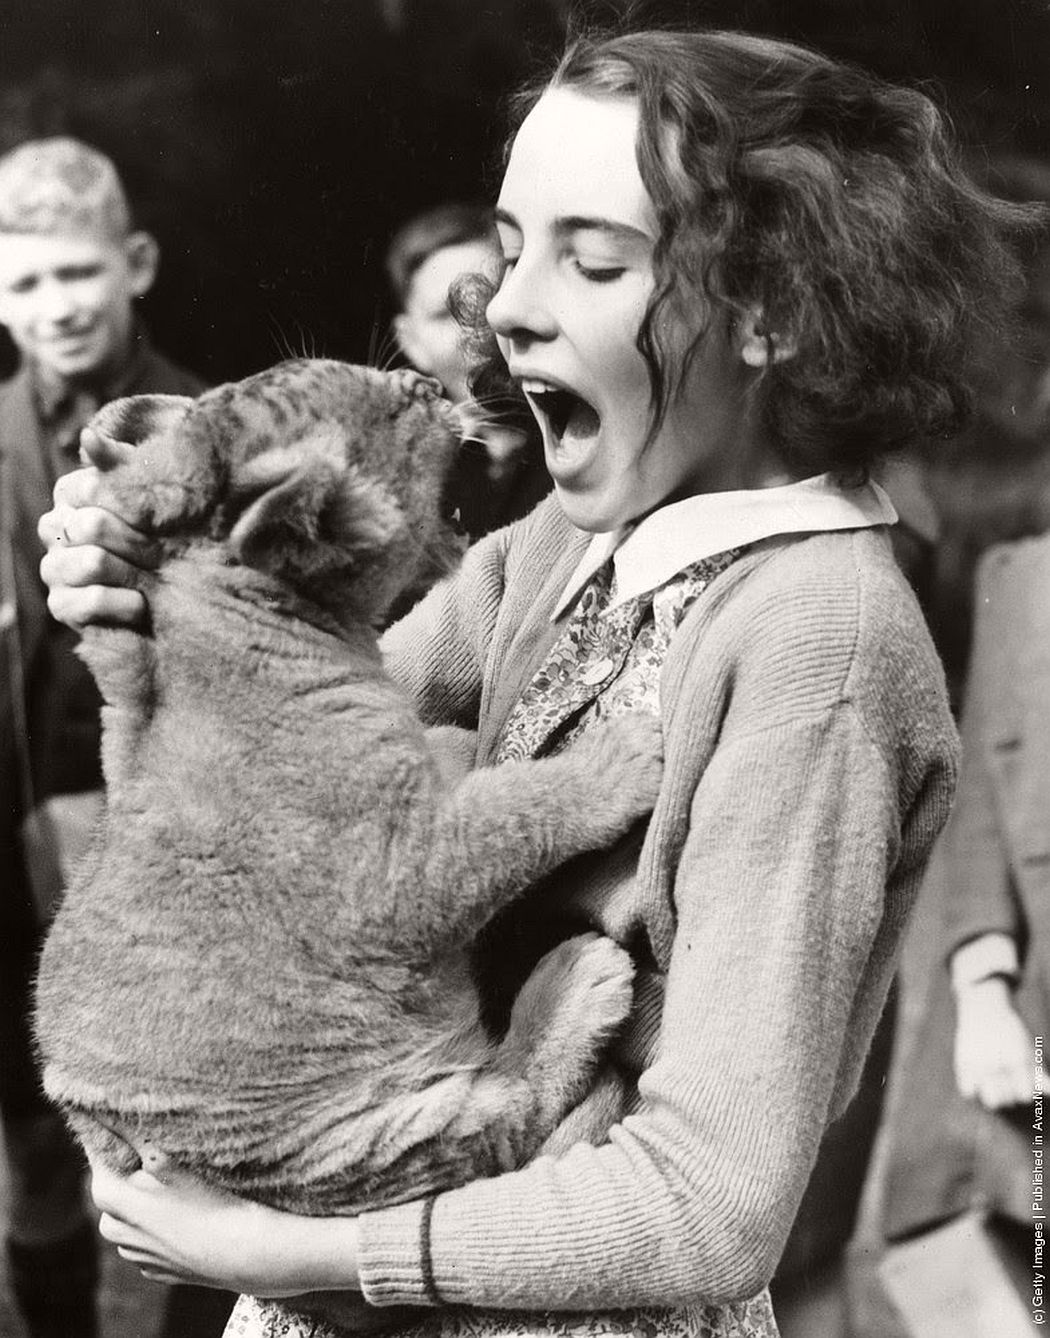 vintage-people-with-baby-animals-1930s-1960s-02